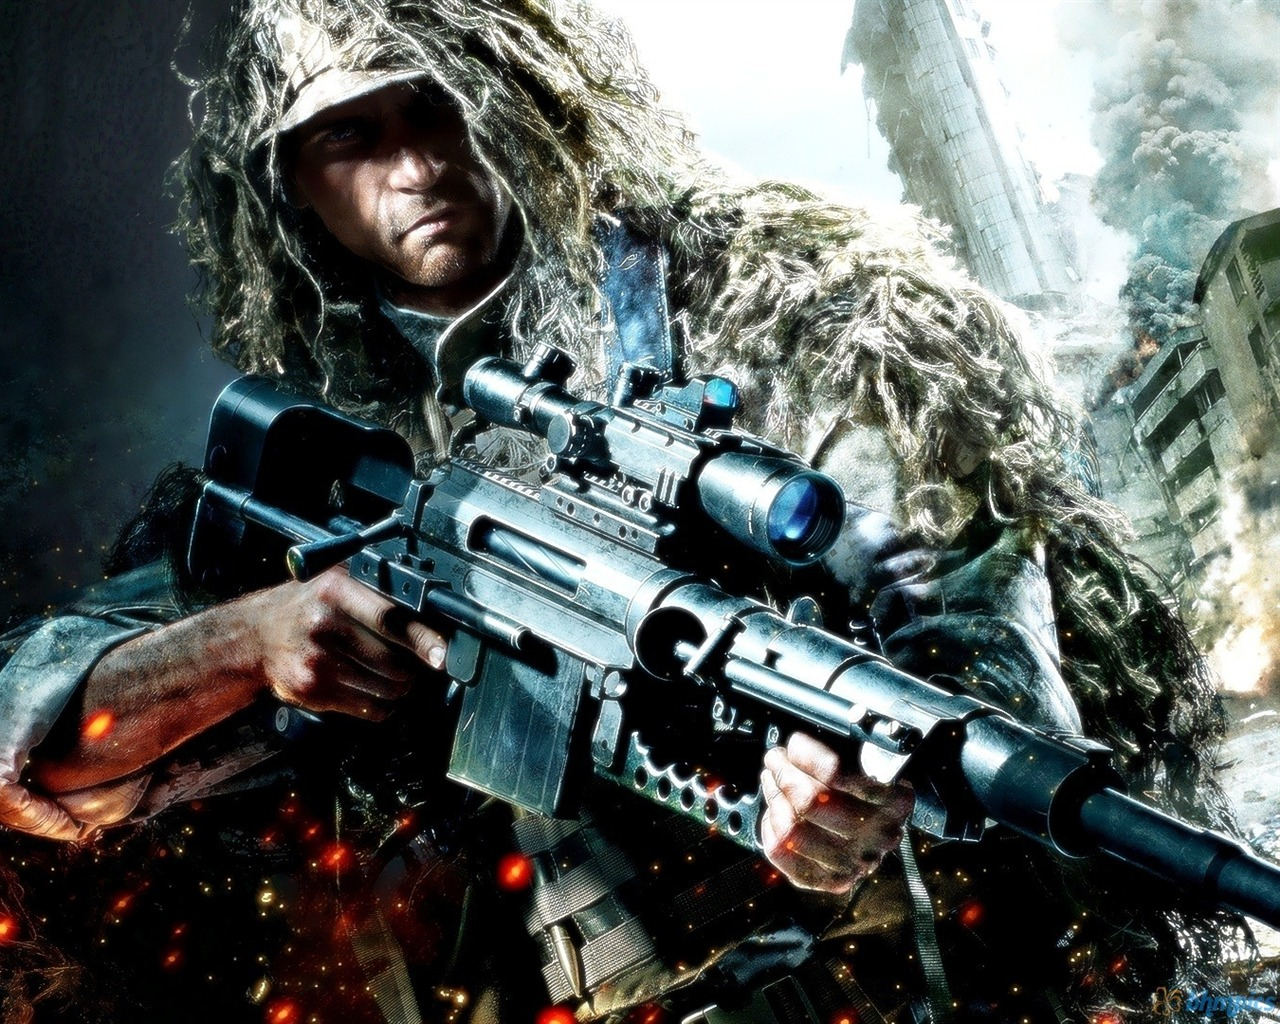 sniperghost warrior 2 game hd wallpaper 07 1280x1024 wallpaper